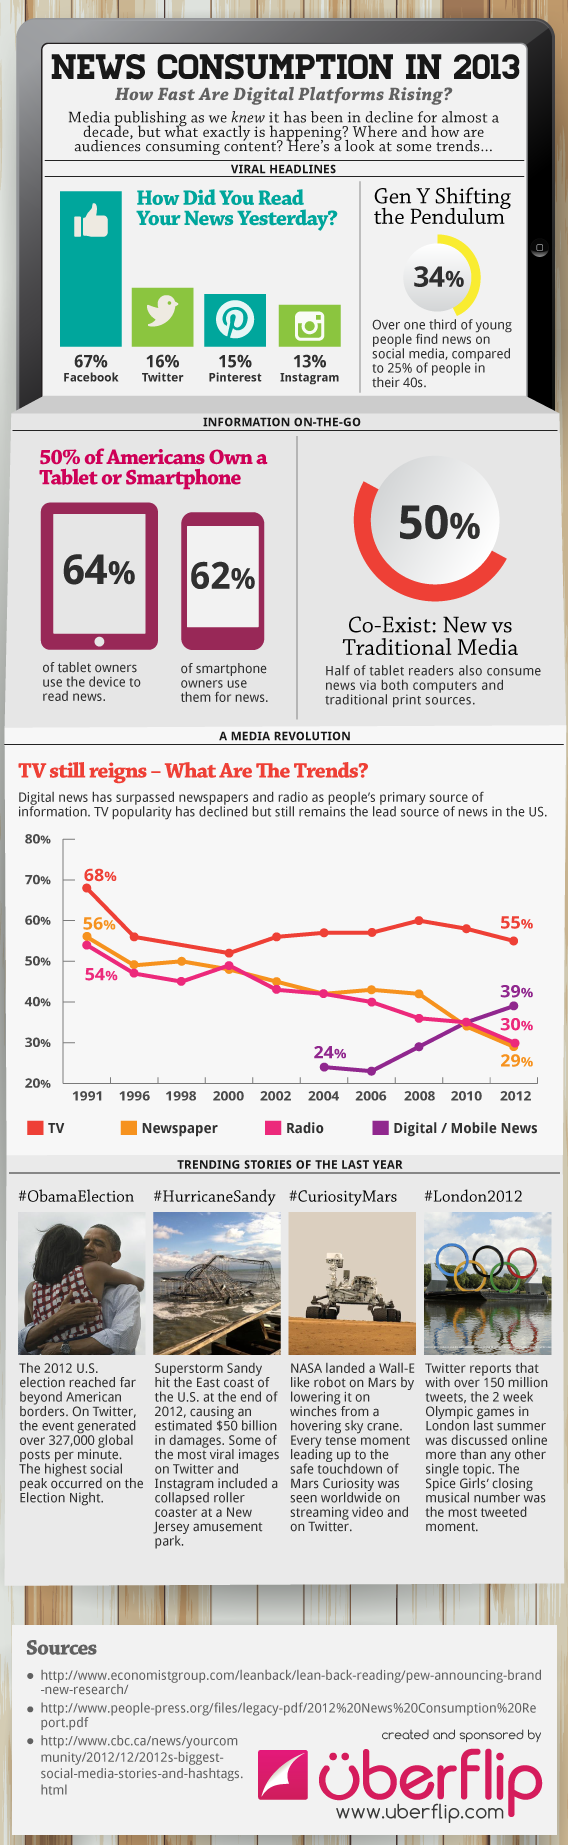 news consumption in 2013